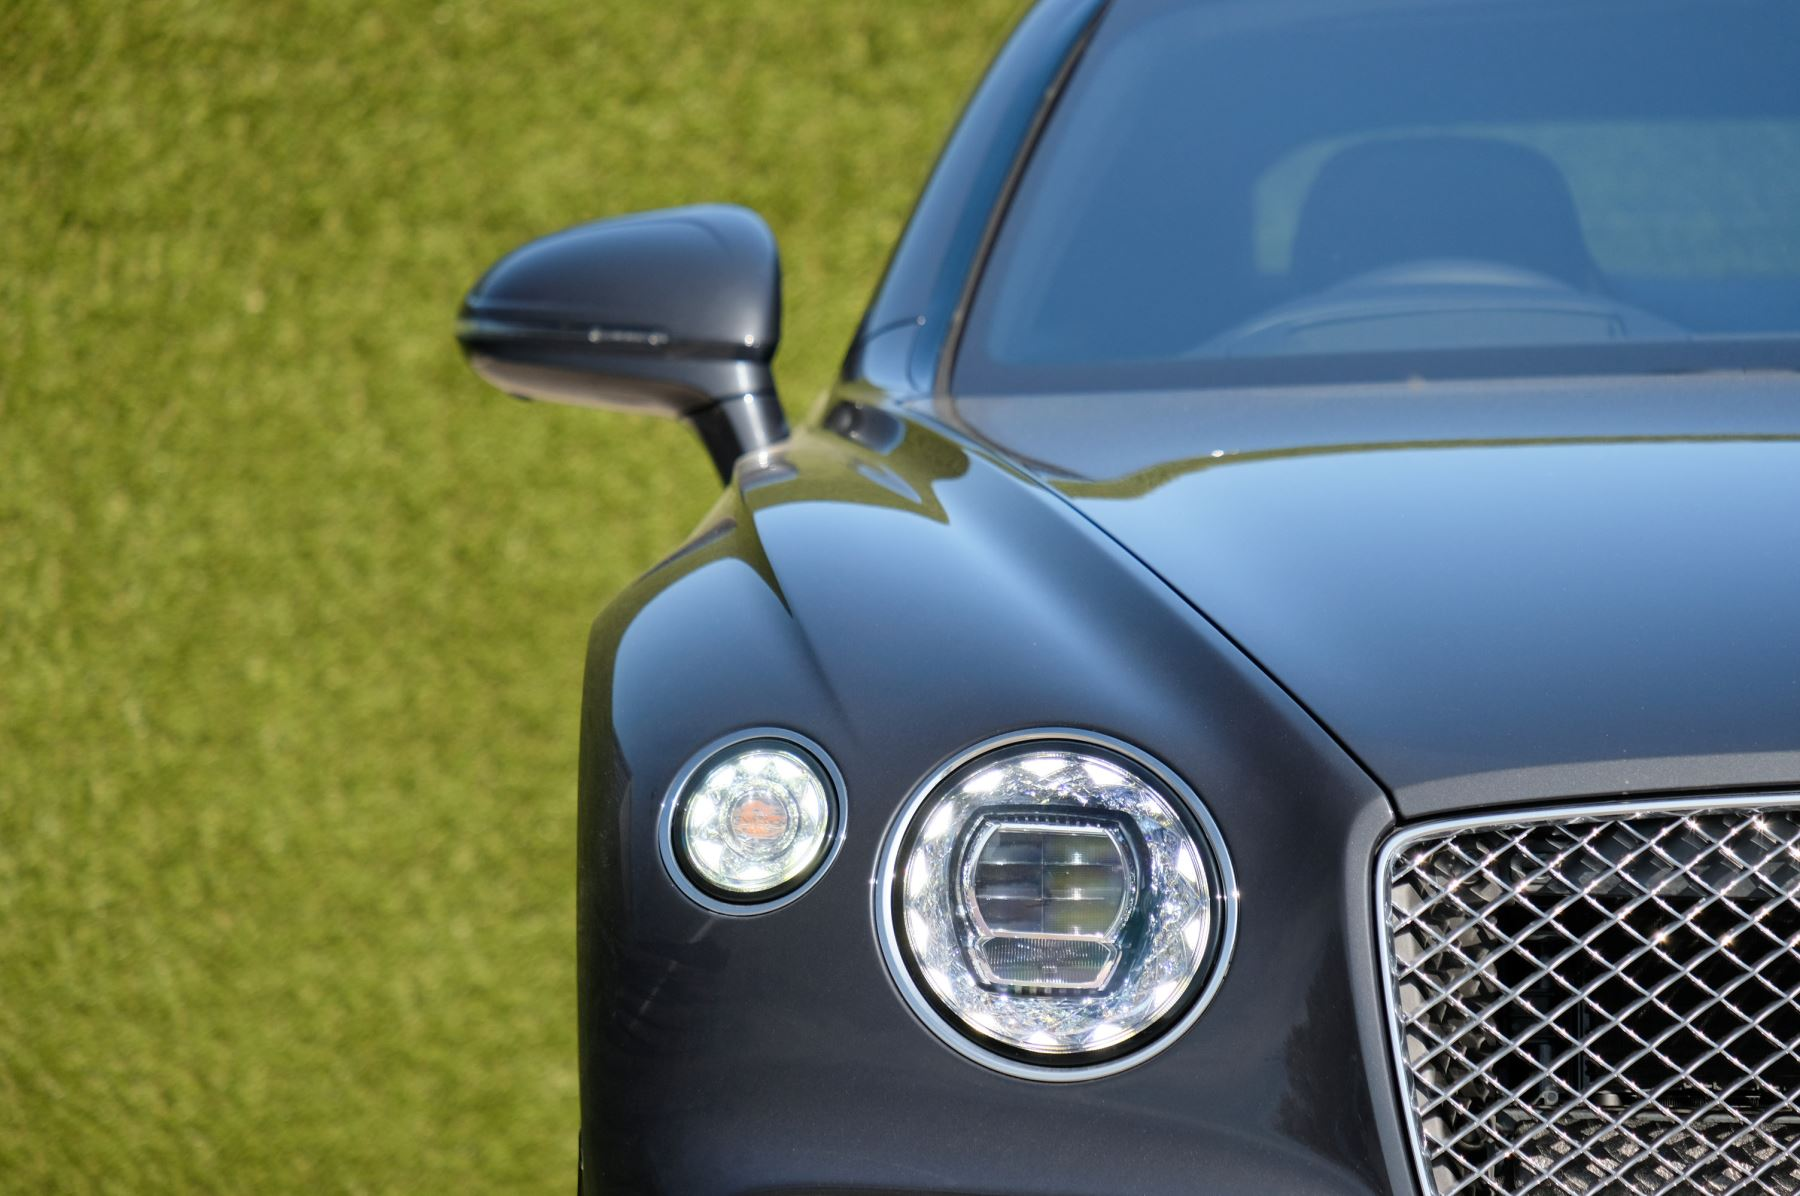 Bentley Continental GT 4.0 V8 Mulliner Edition 2dr Auto - City Specification - Panoramic Glass Roof image 6